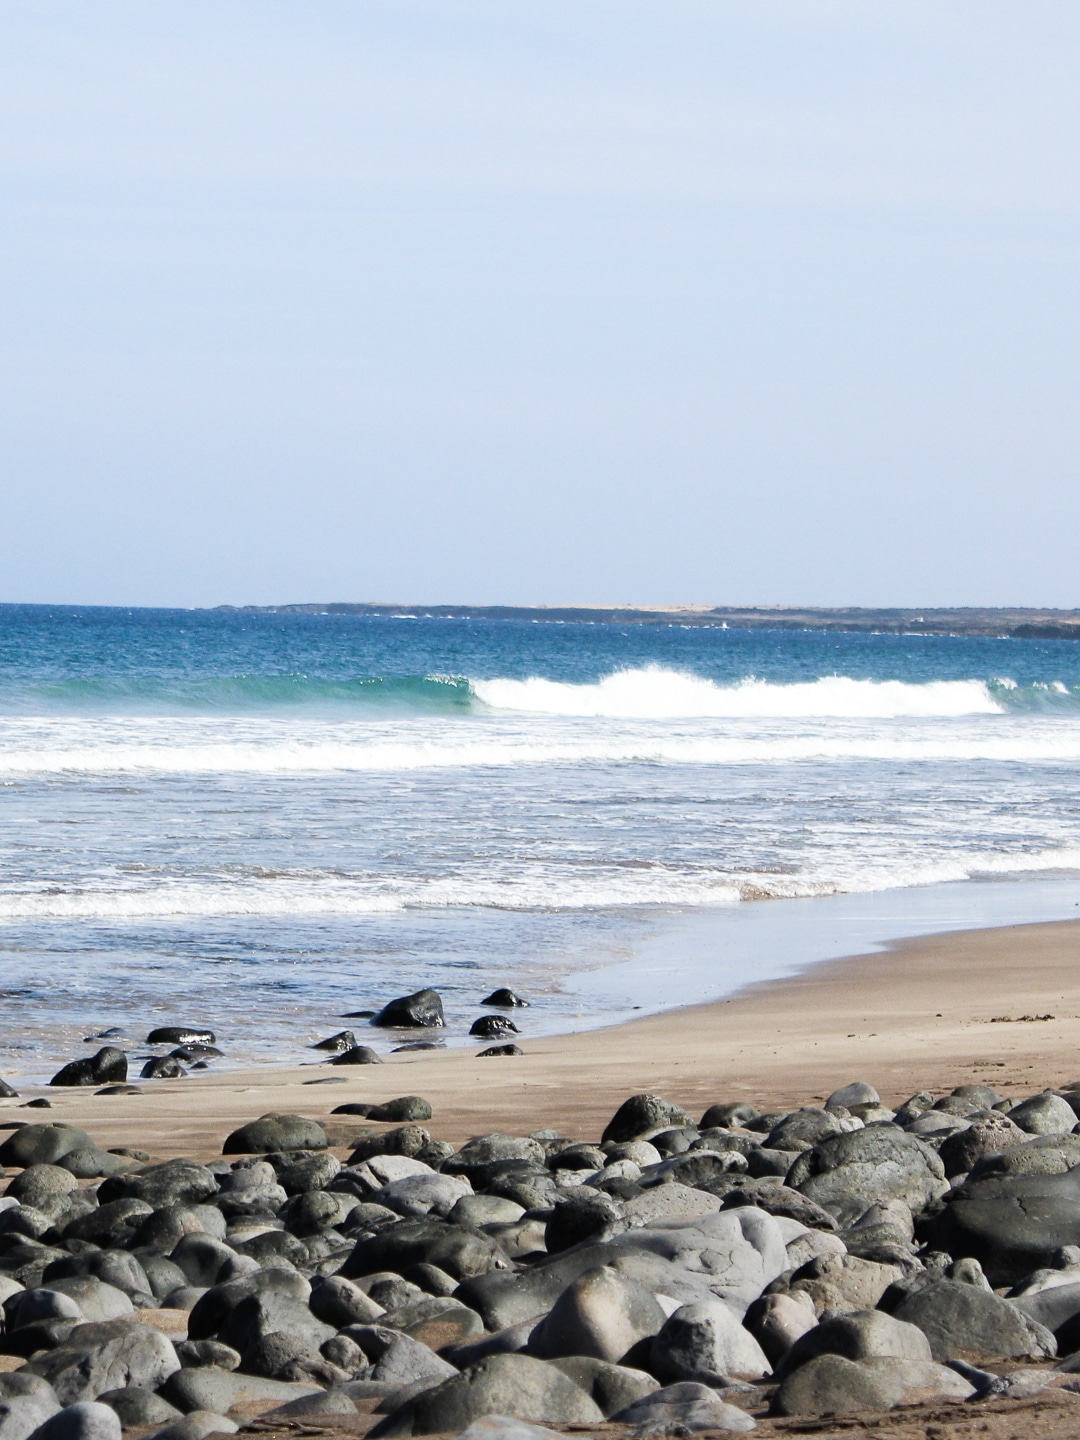 Sandy beach at Arrieta, Lanzarote